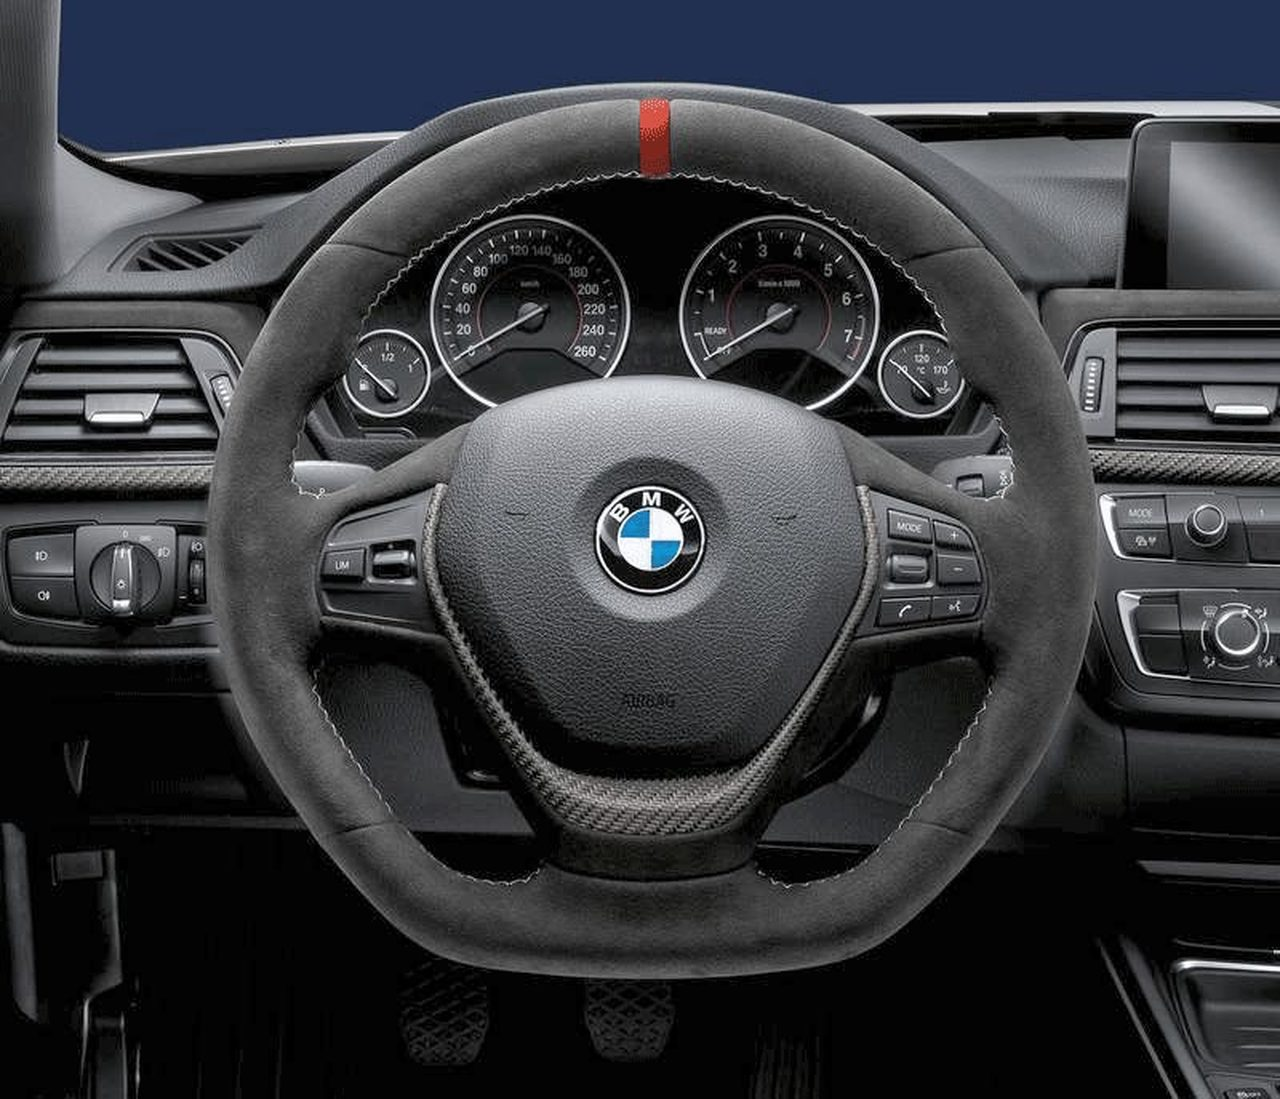 What Differentiates The Bmw Steering Wheel From Other Cars